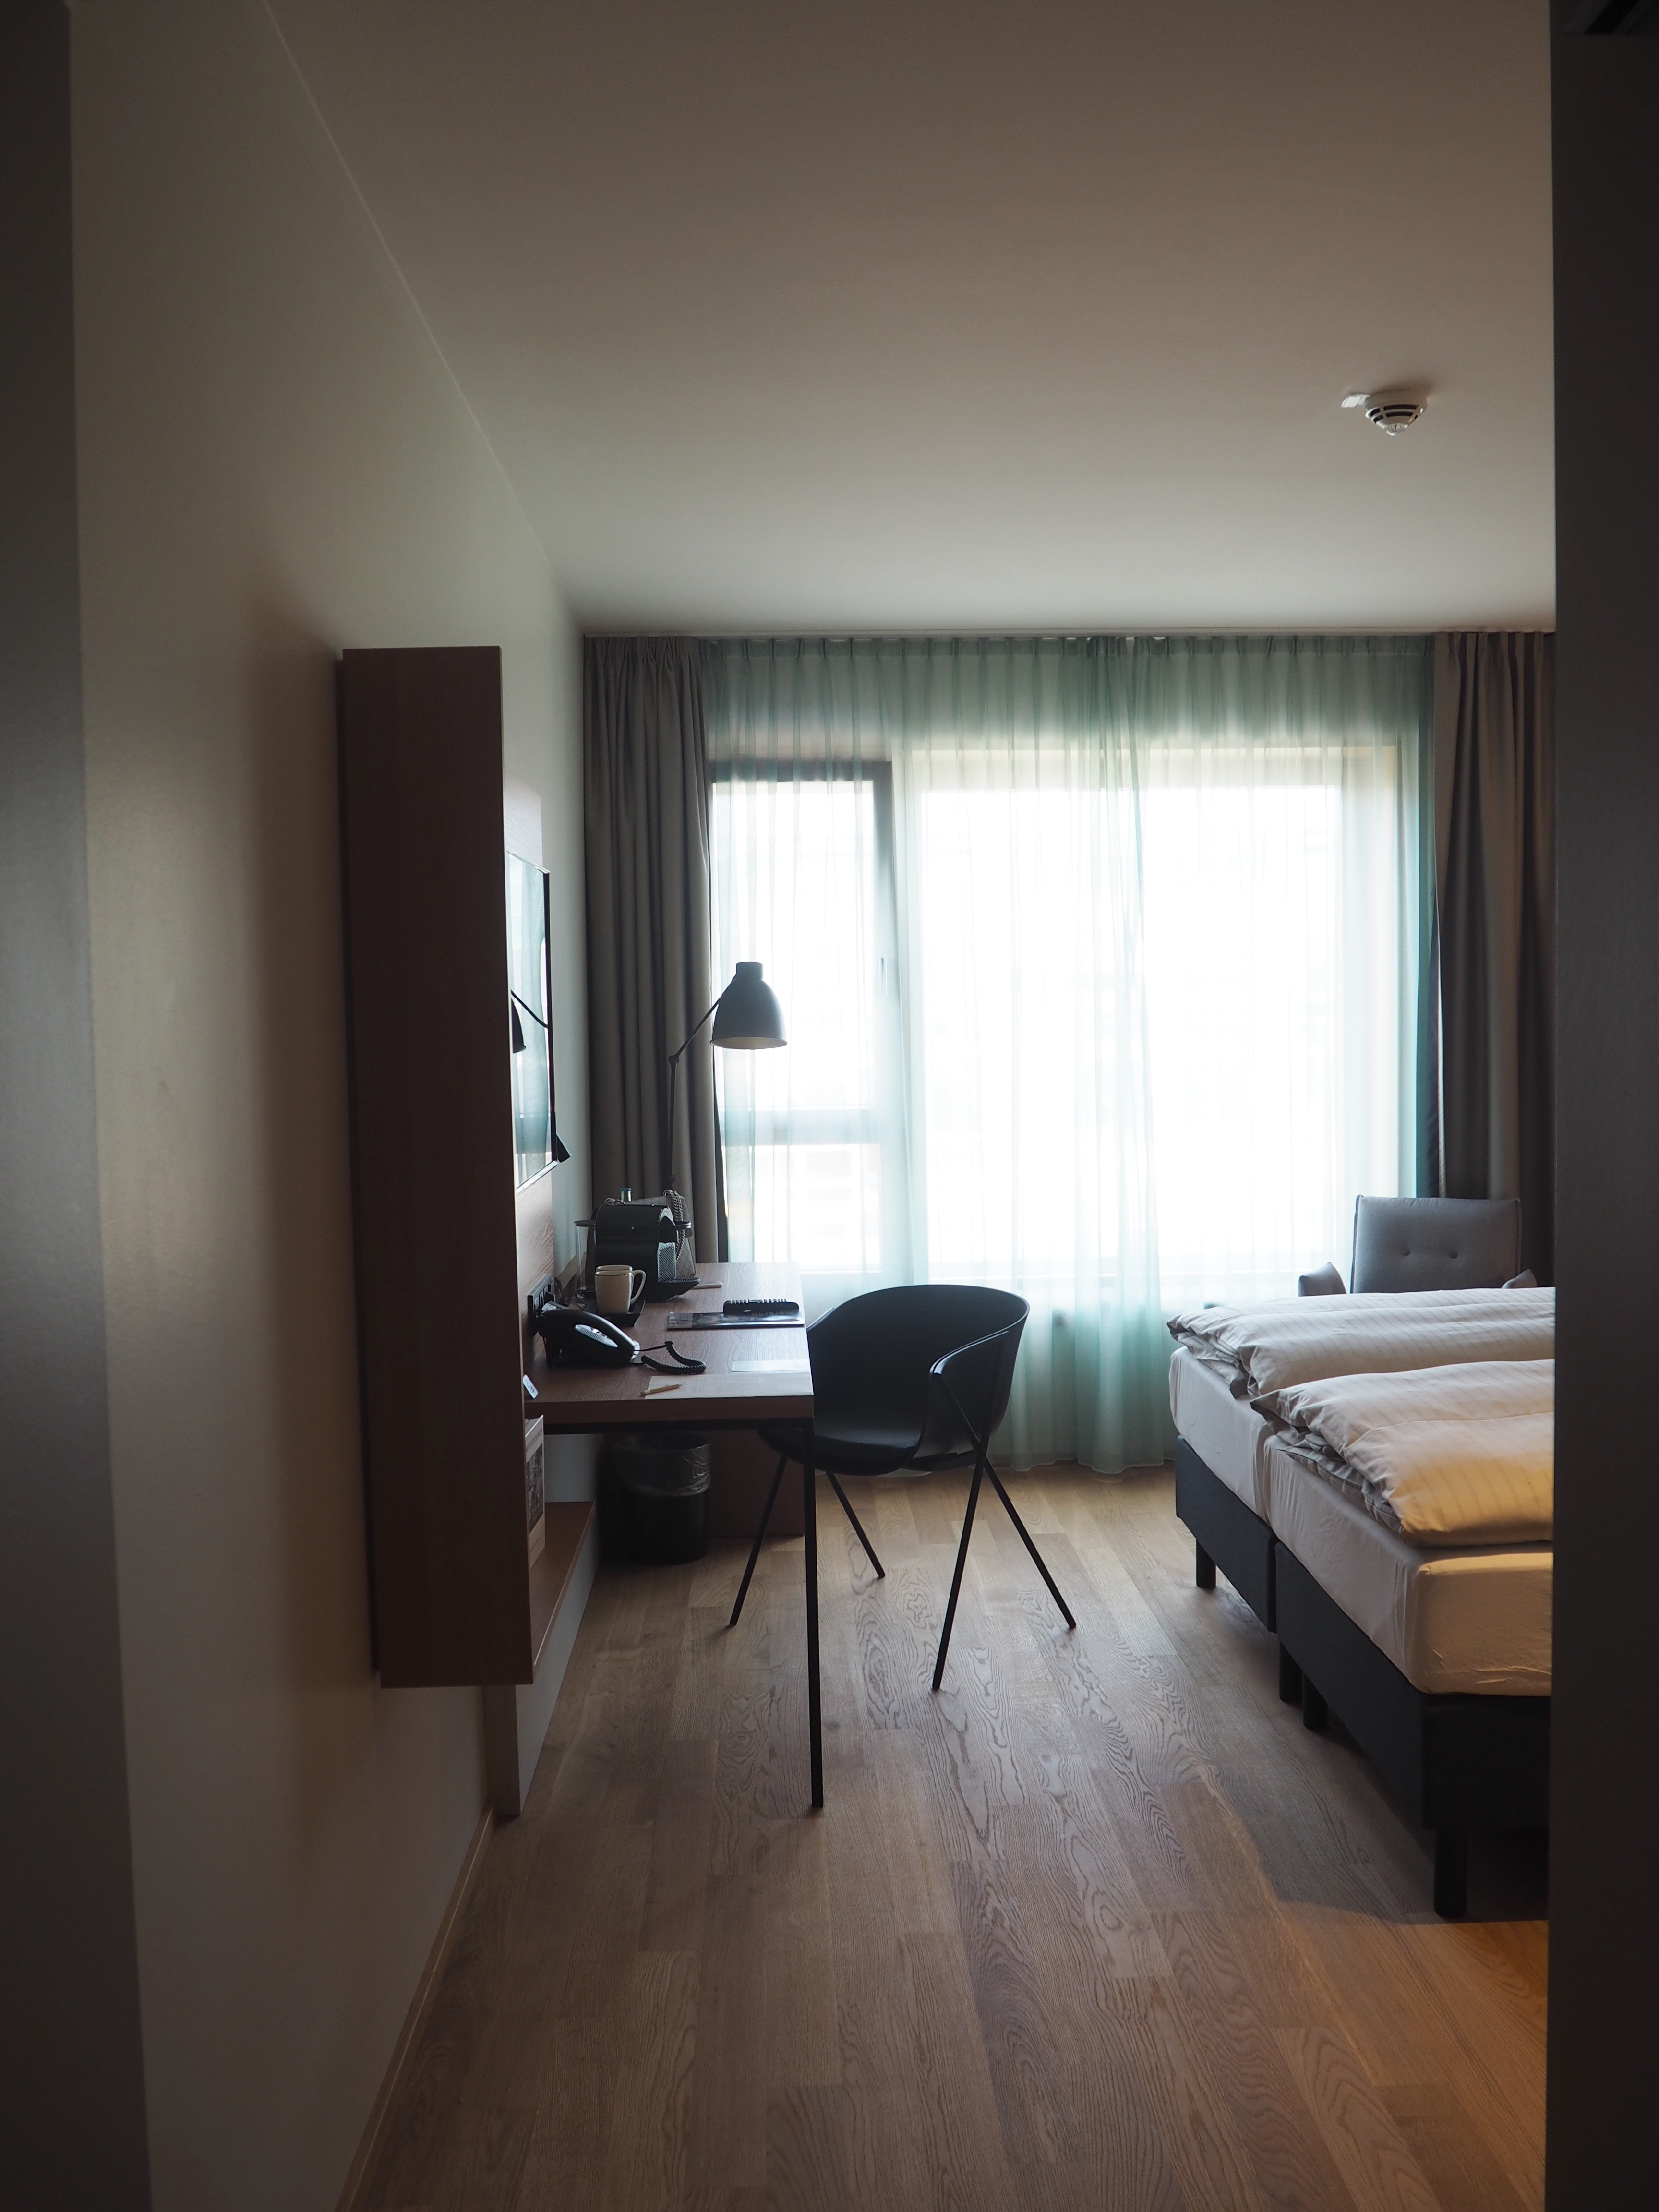 Berlin Fashion Week Hotel Review - Hotel The YARD